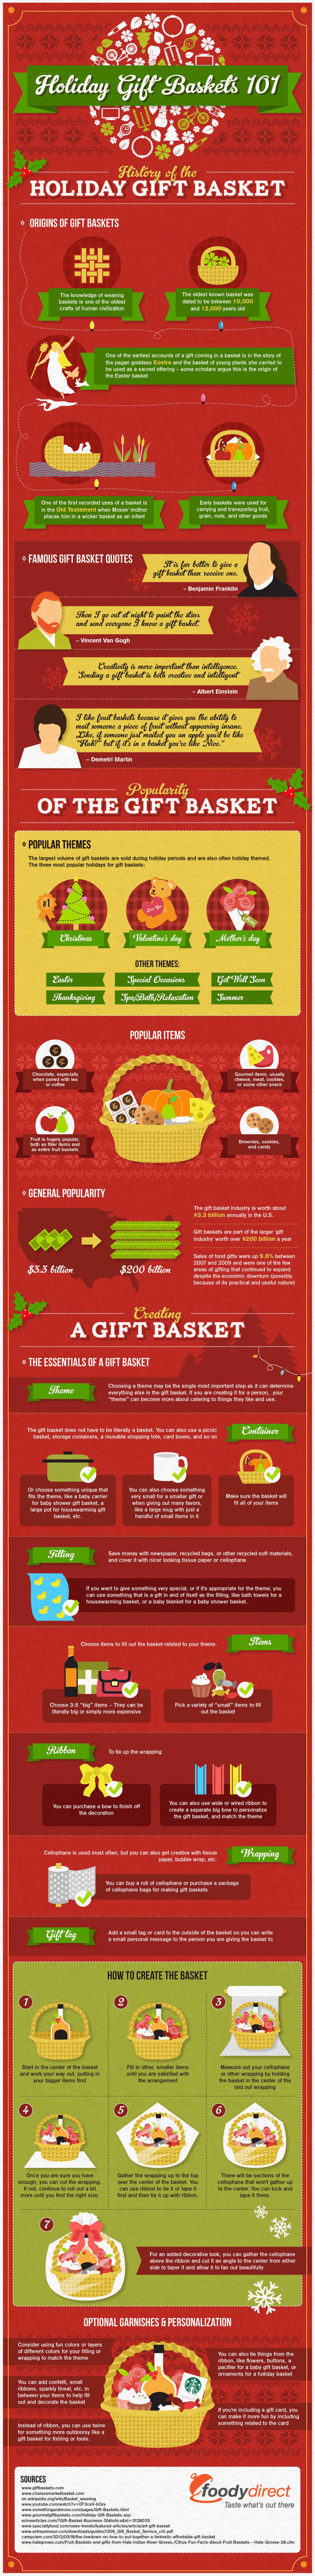 History-of-the-holiday-gift-basket-infographic-1-2